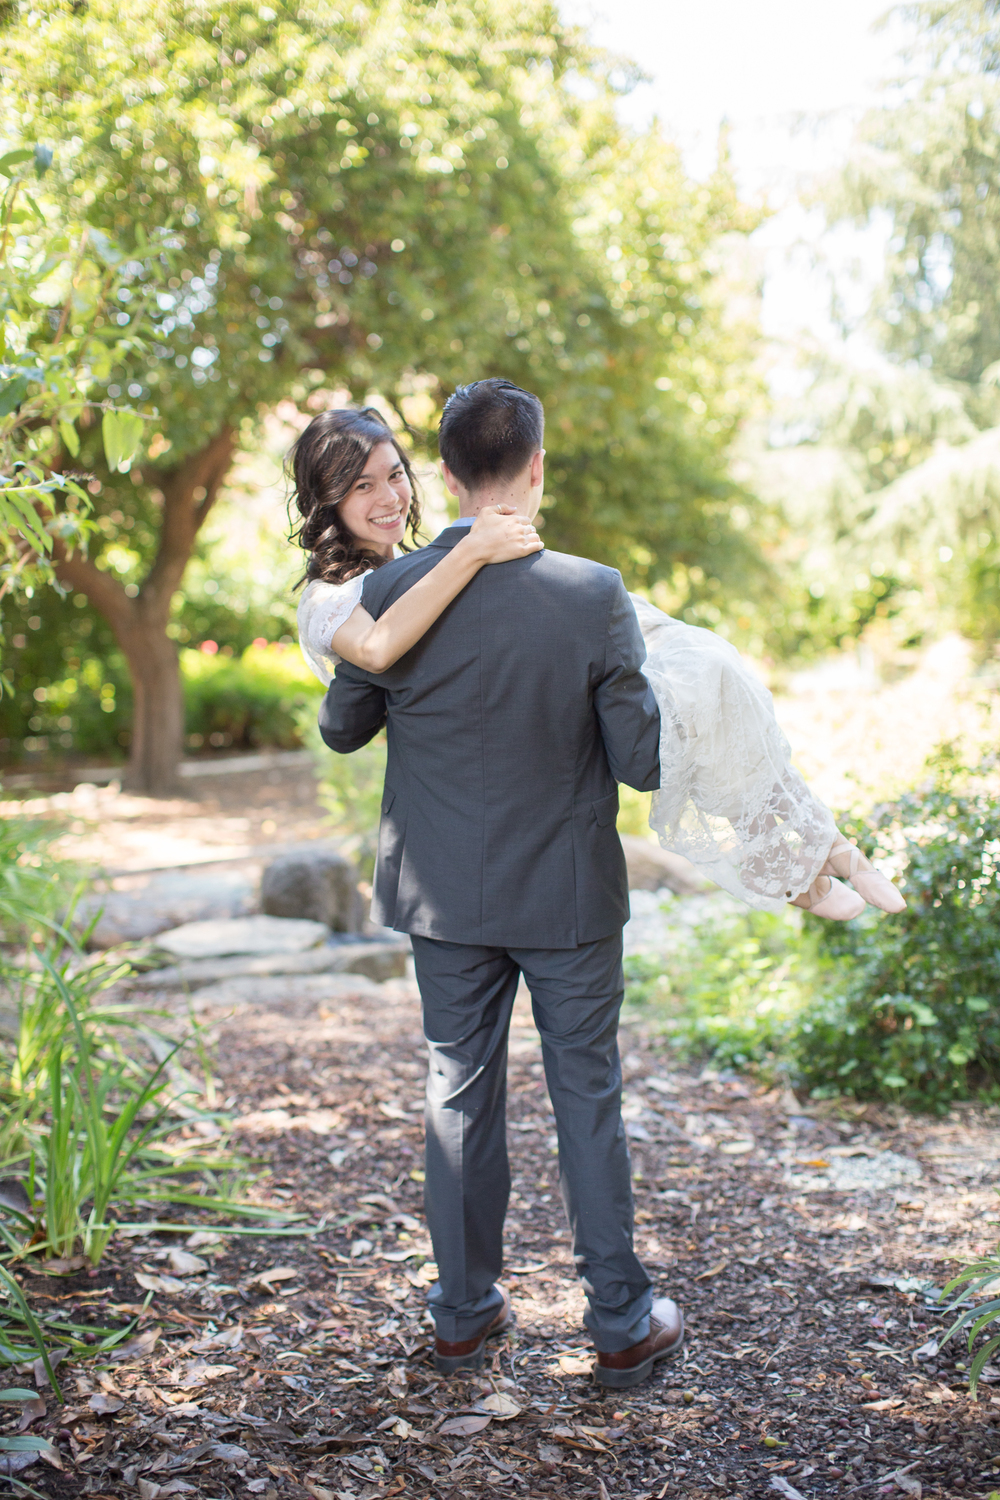 Chico California Wedding and Engagement Photography by TréCreative - Fremont Wedding Photography (231 of 261).jpg